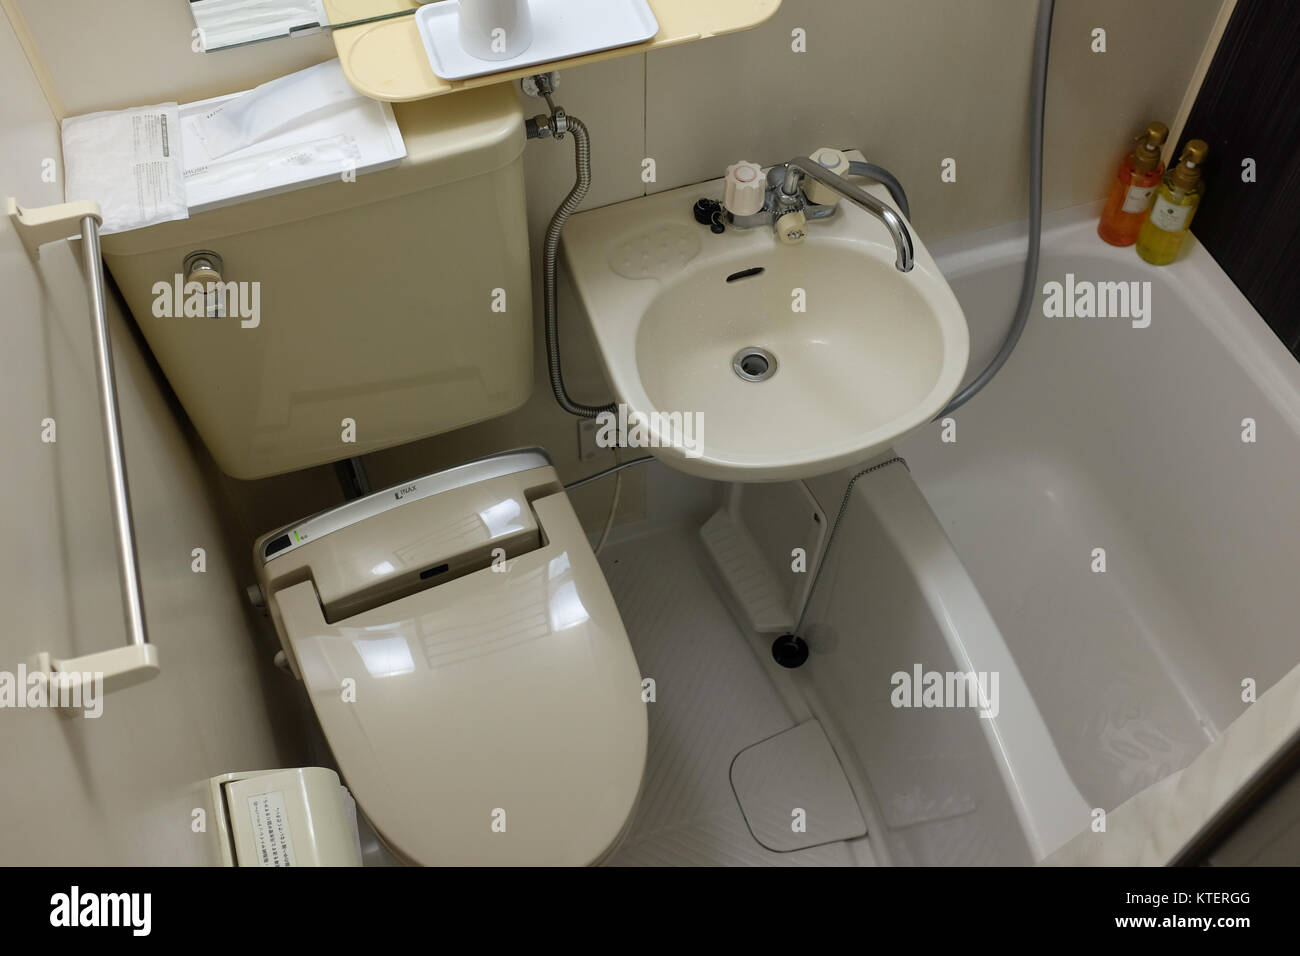 Compact living in Japan: some apartment rooms and hotel rooms in ...